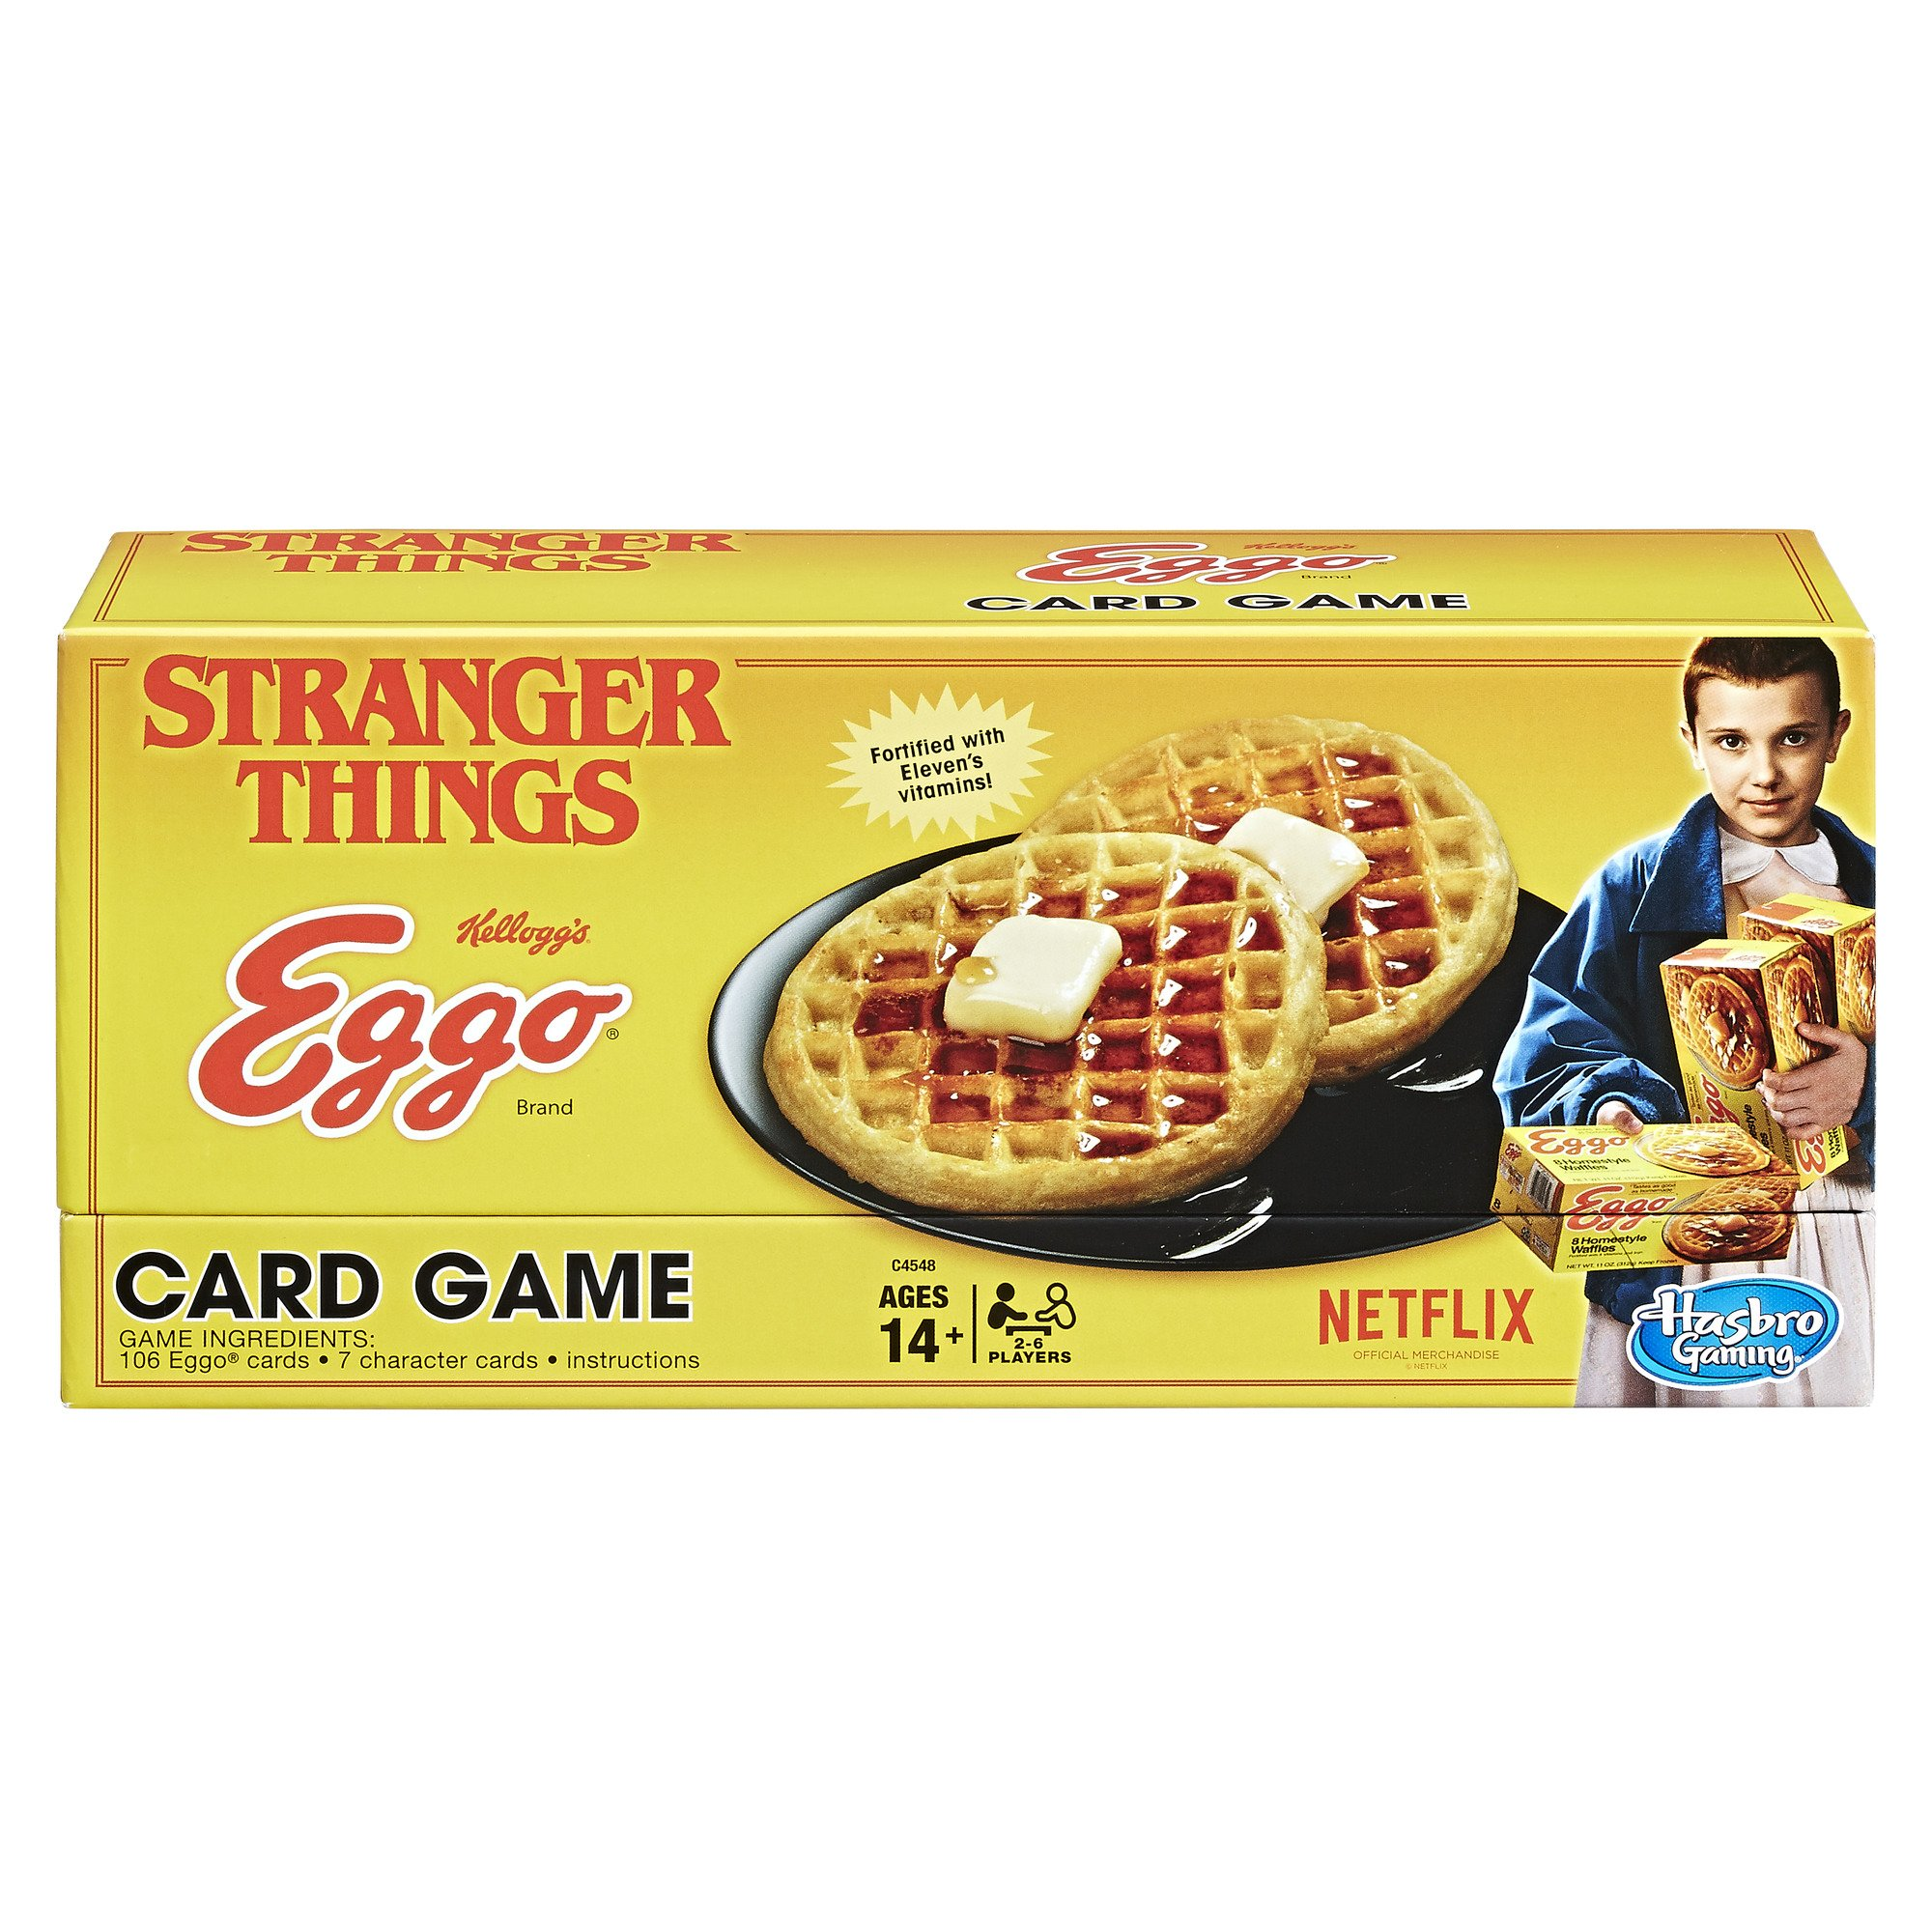 Stranger Things Eggo Card Game Limited Edition: Amazon.co.uk: Toys & Games